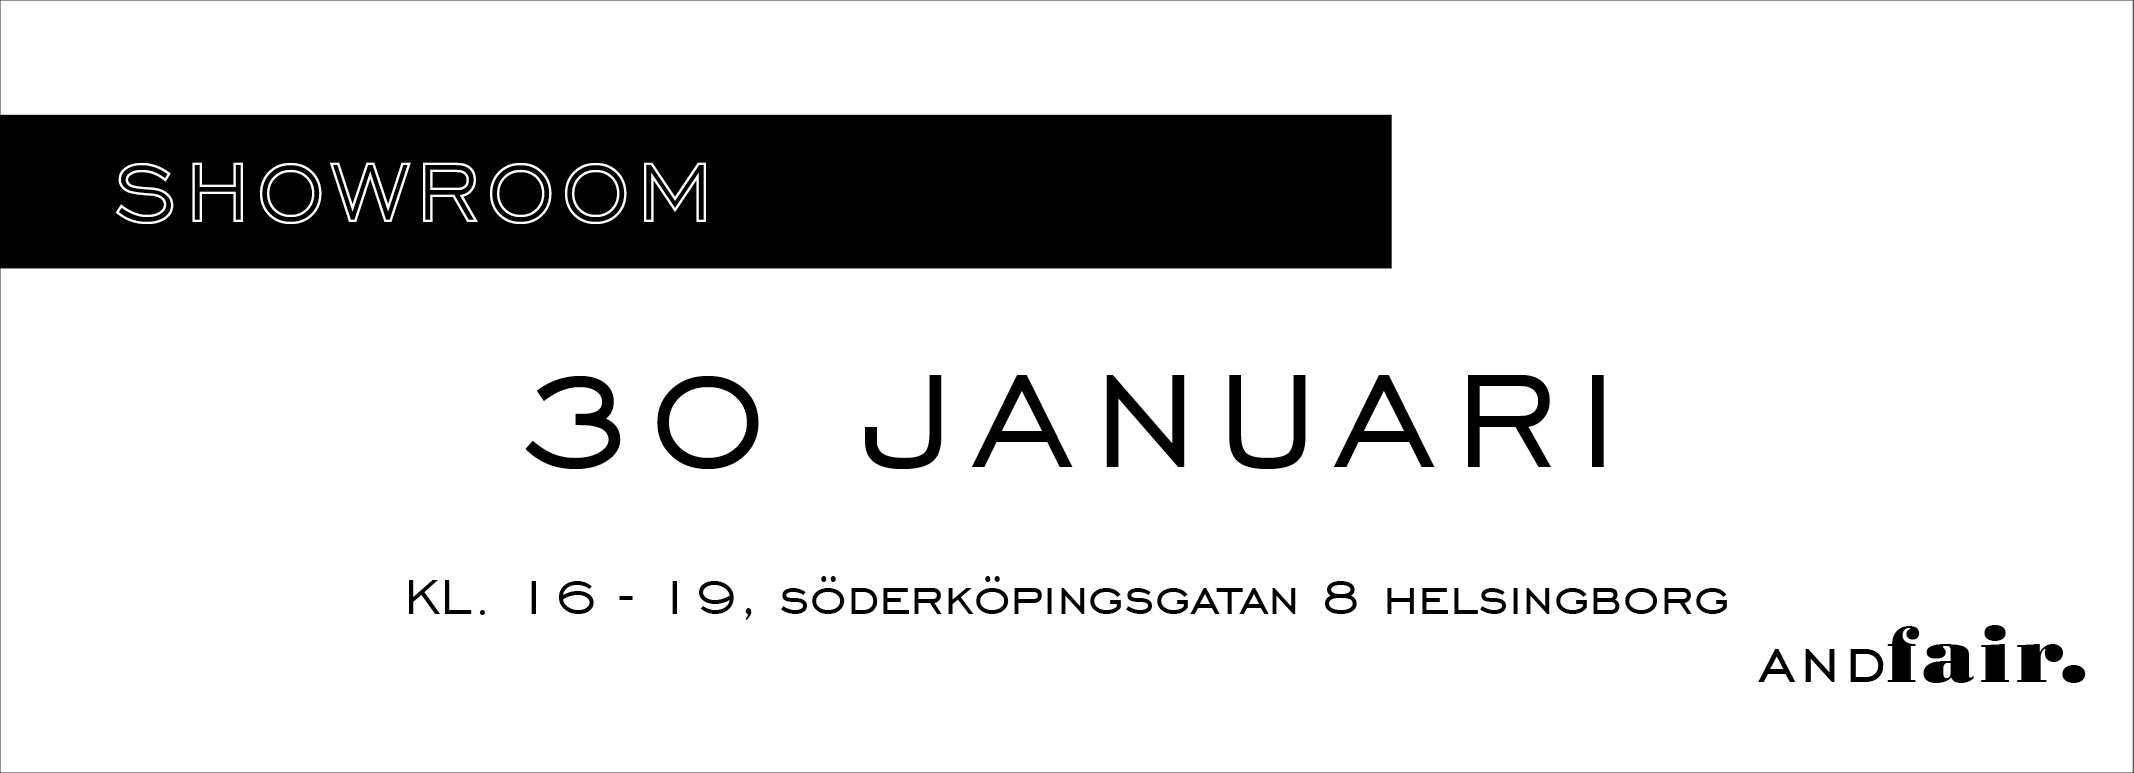 showroom 30 januari ANDfair